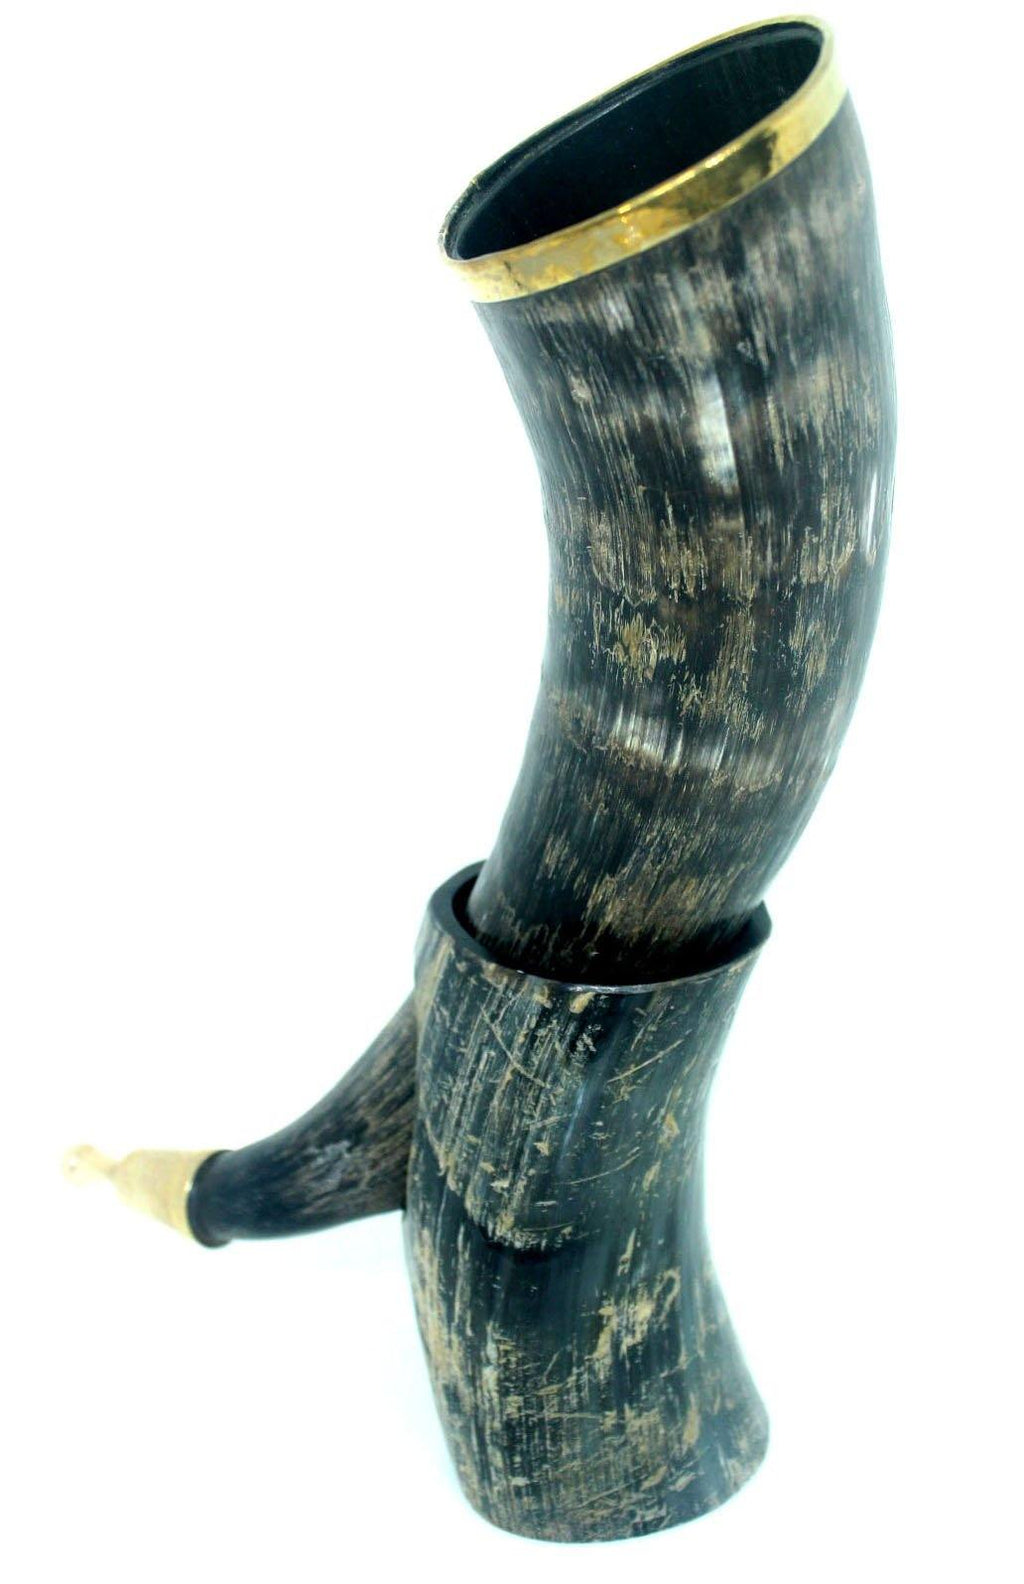 EthniCache Hornmug Bronze Tipped Drinking Horn With Stand